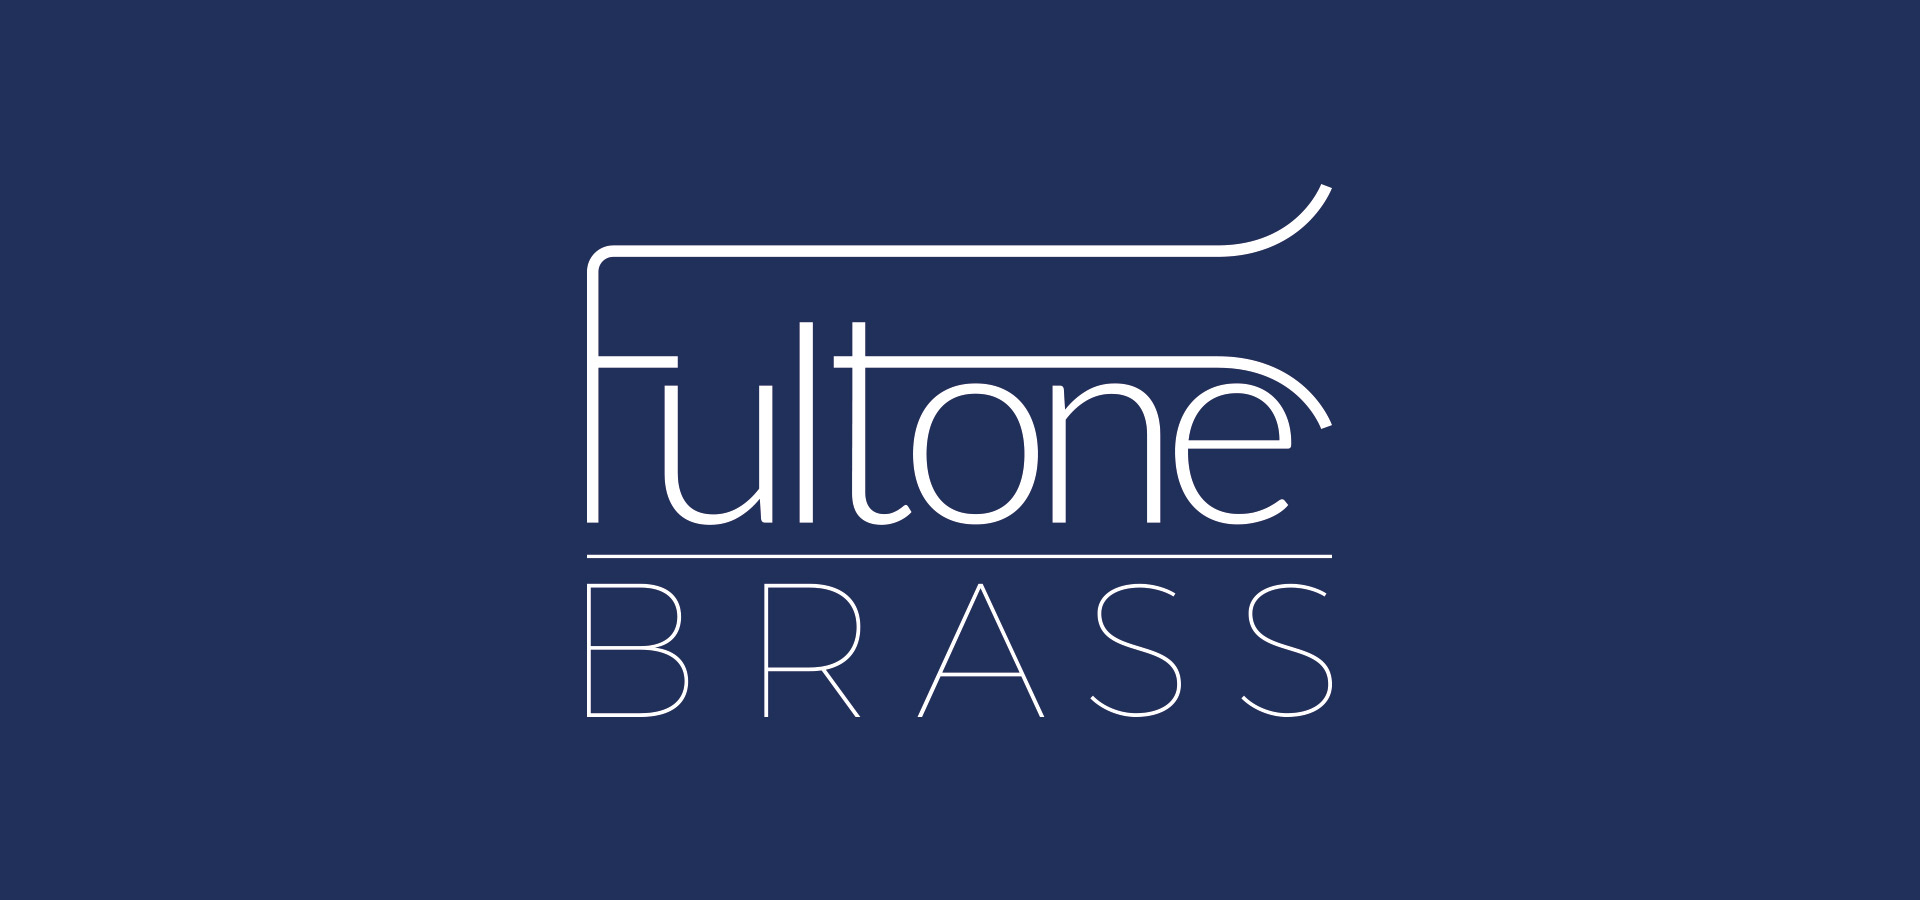 Fulton Brass - Contact Fultone Brass